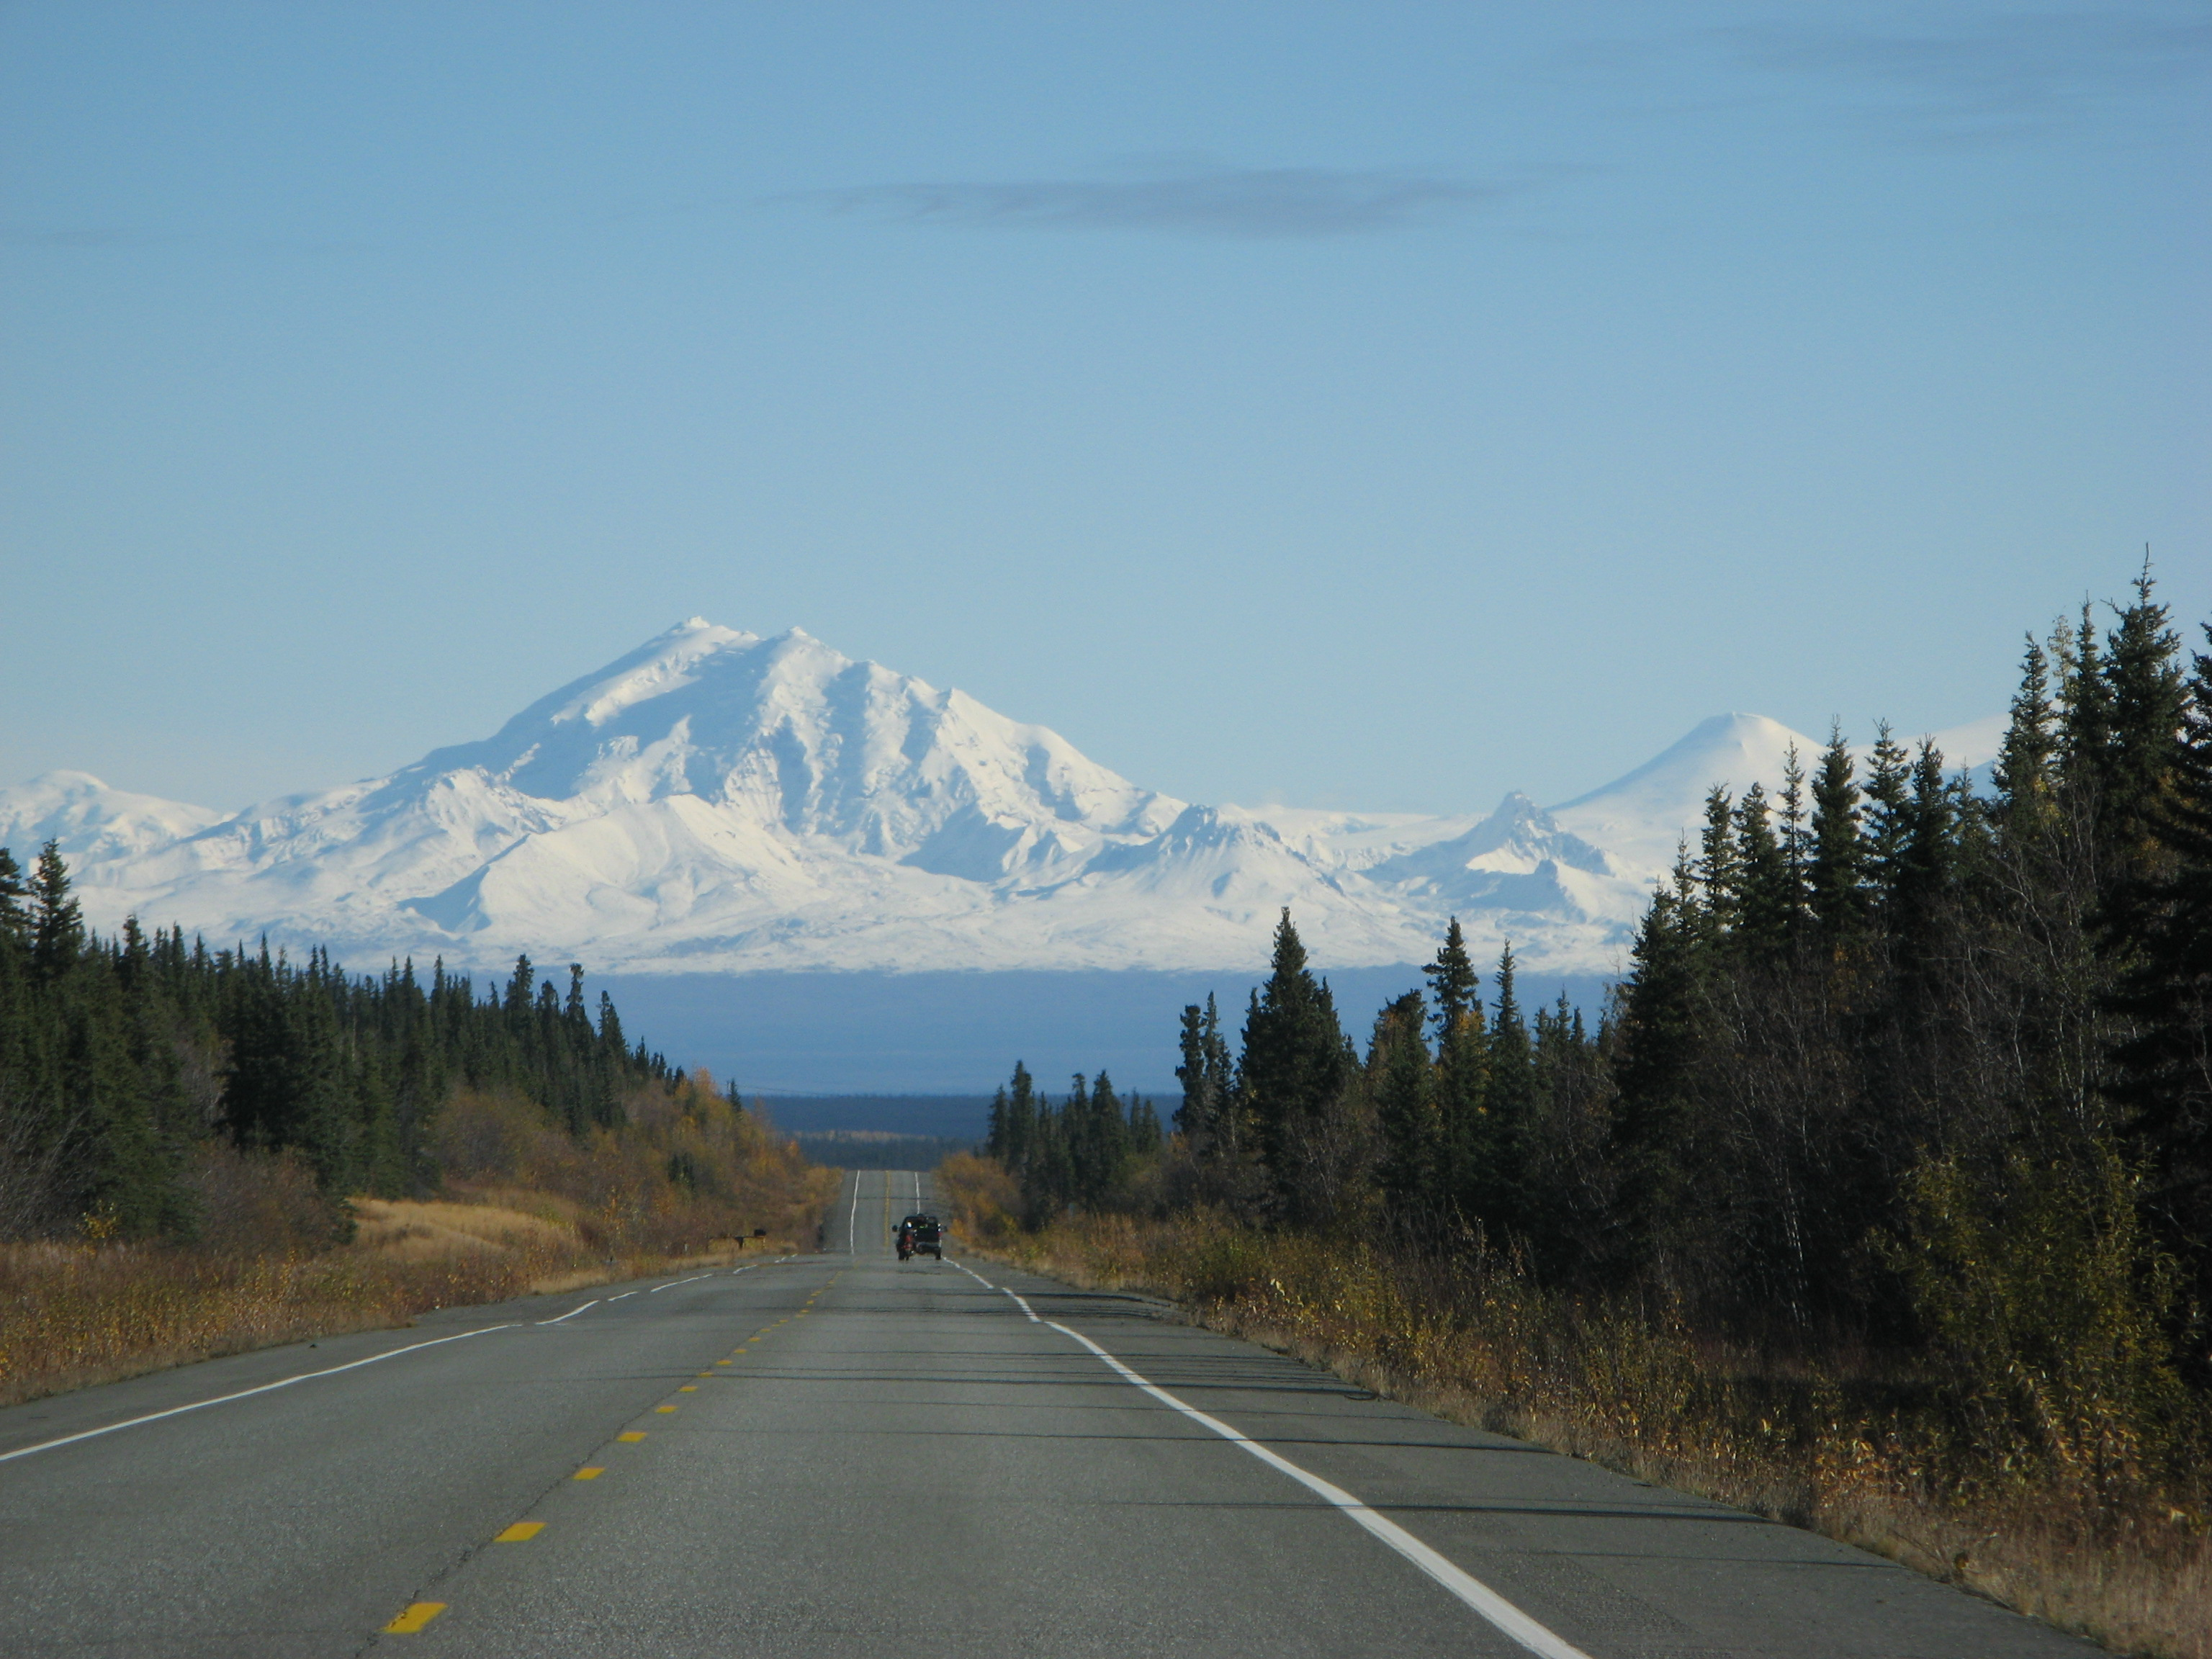 Mountain hovering over Alaska road.